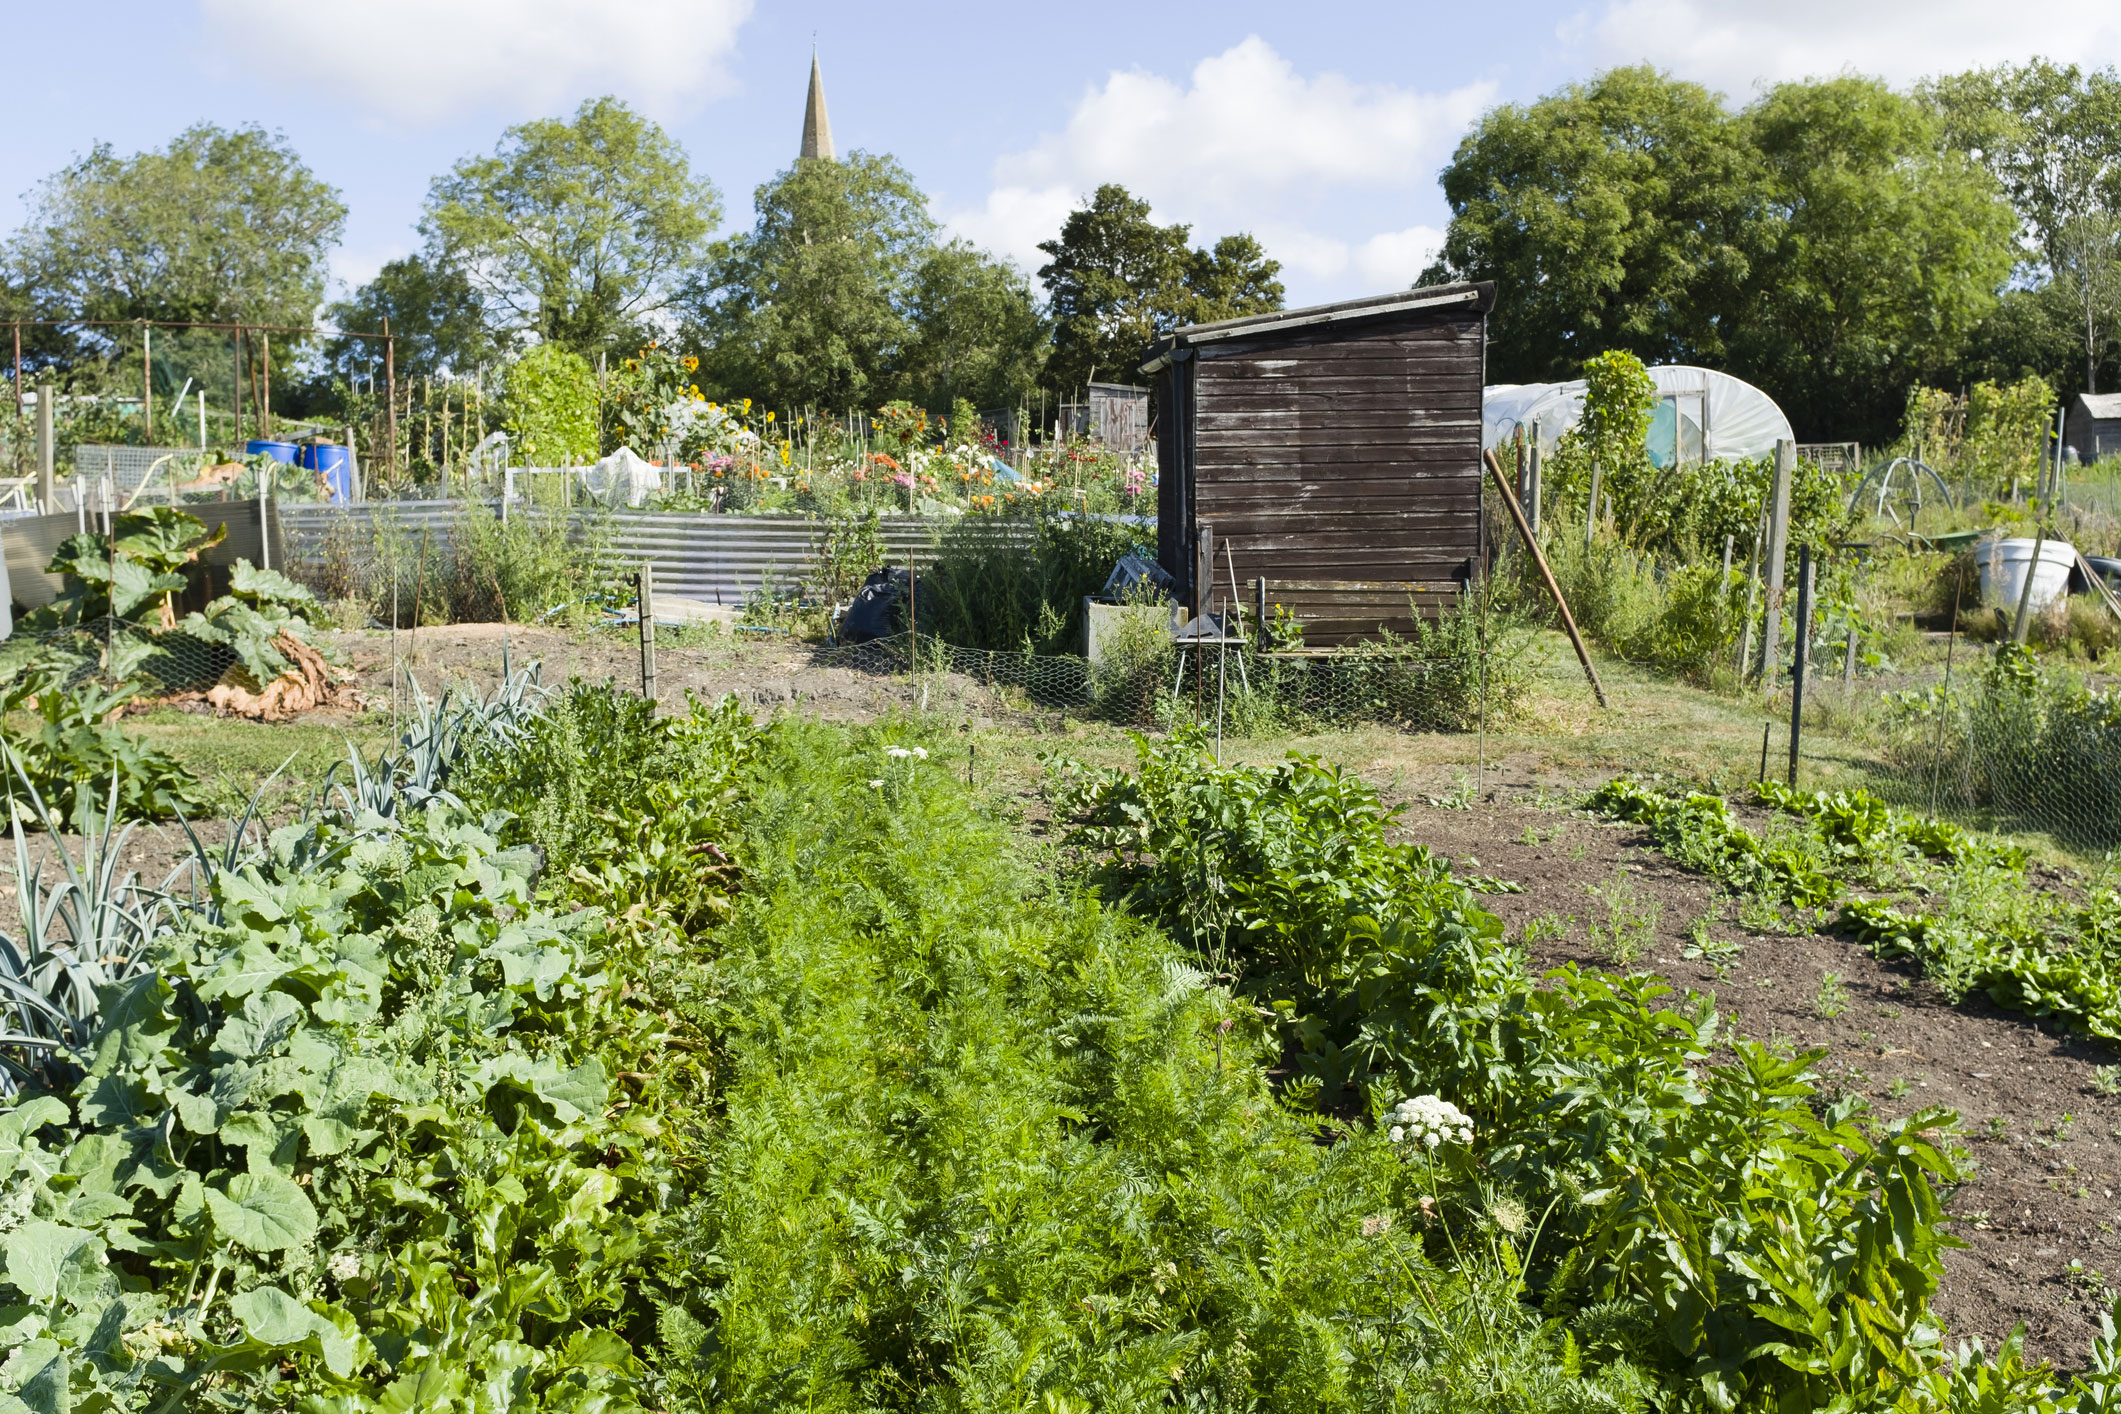 Growing vegetables in allotments, community gardens